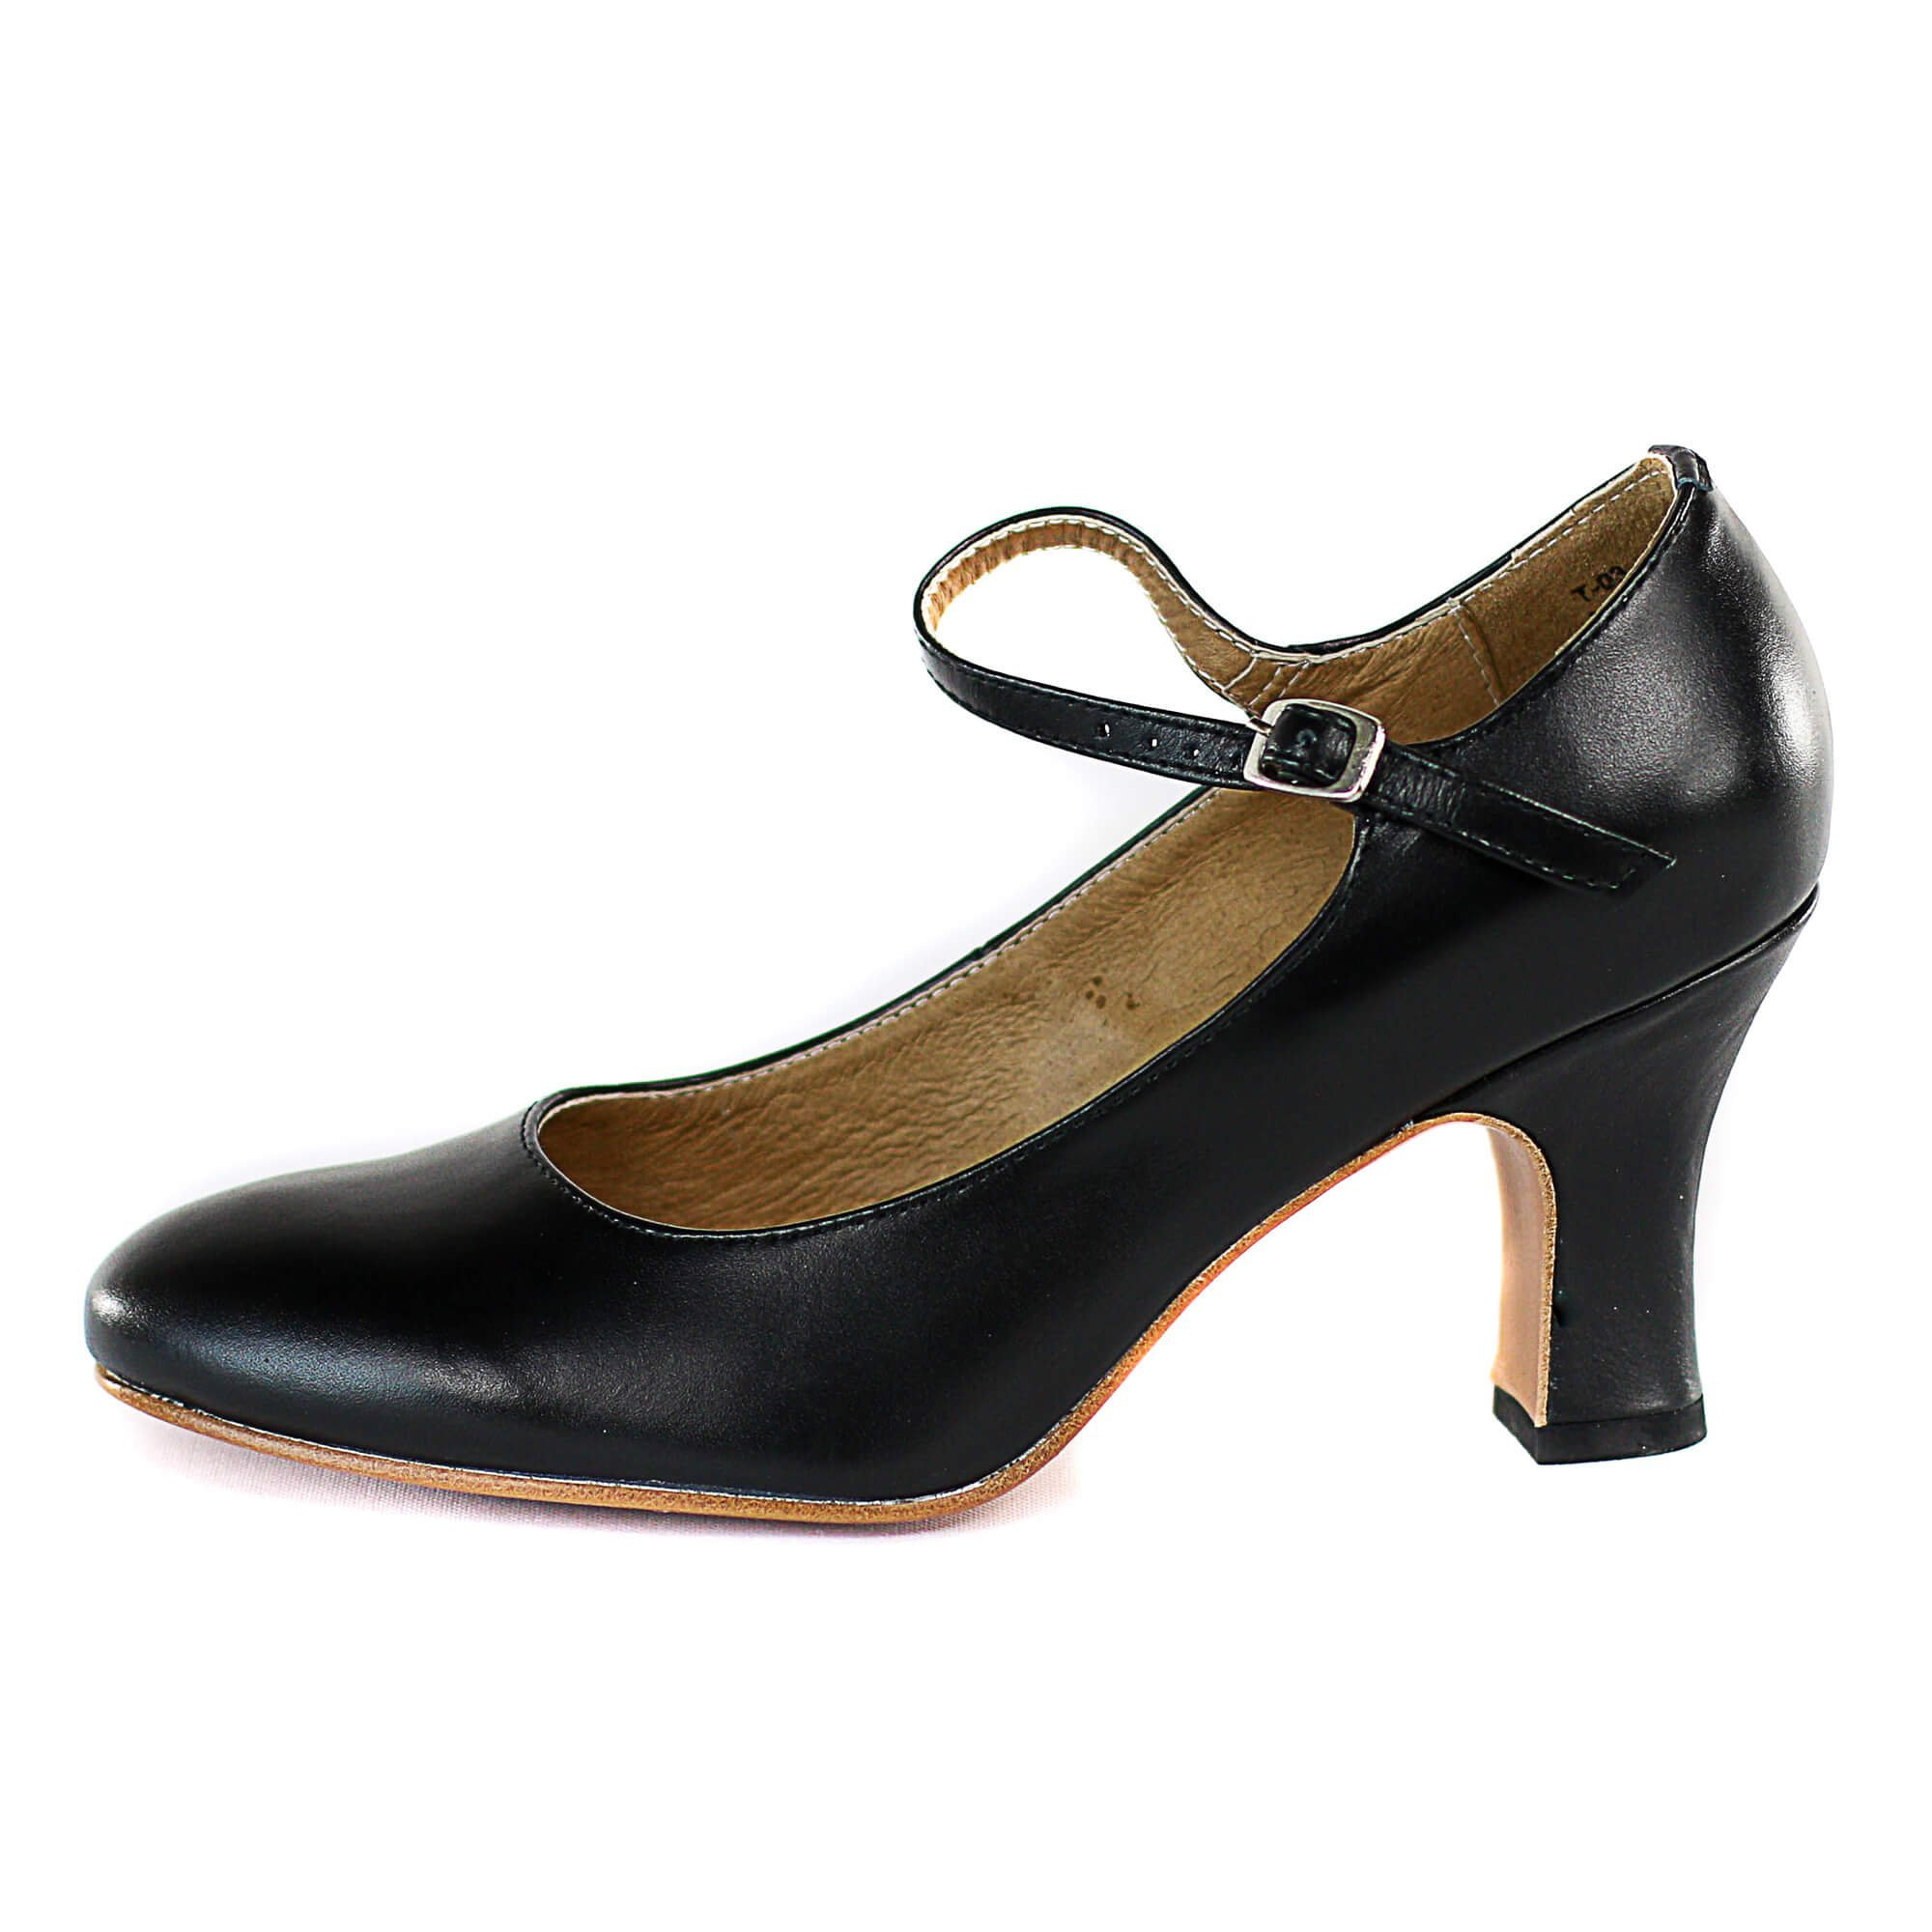 Dimichi Adult Mia Classic Leather Sole 3 Heel Character Shoes